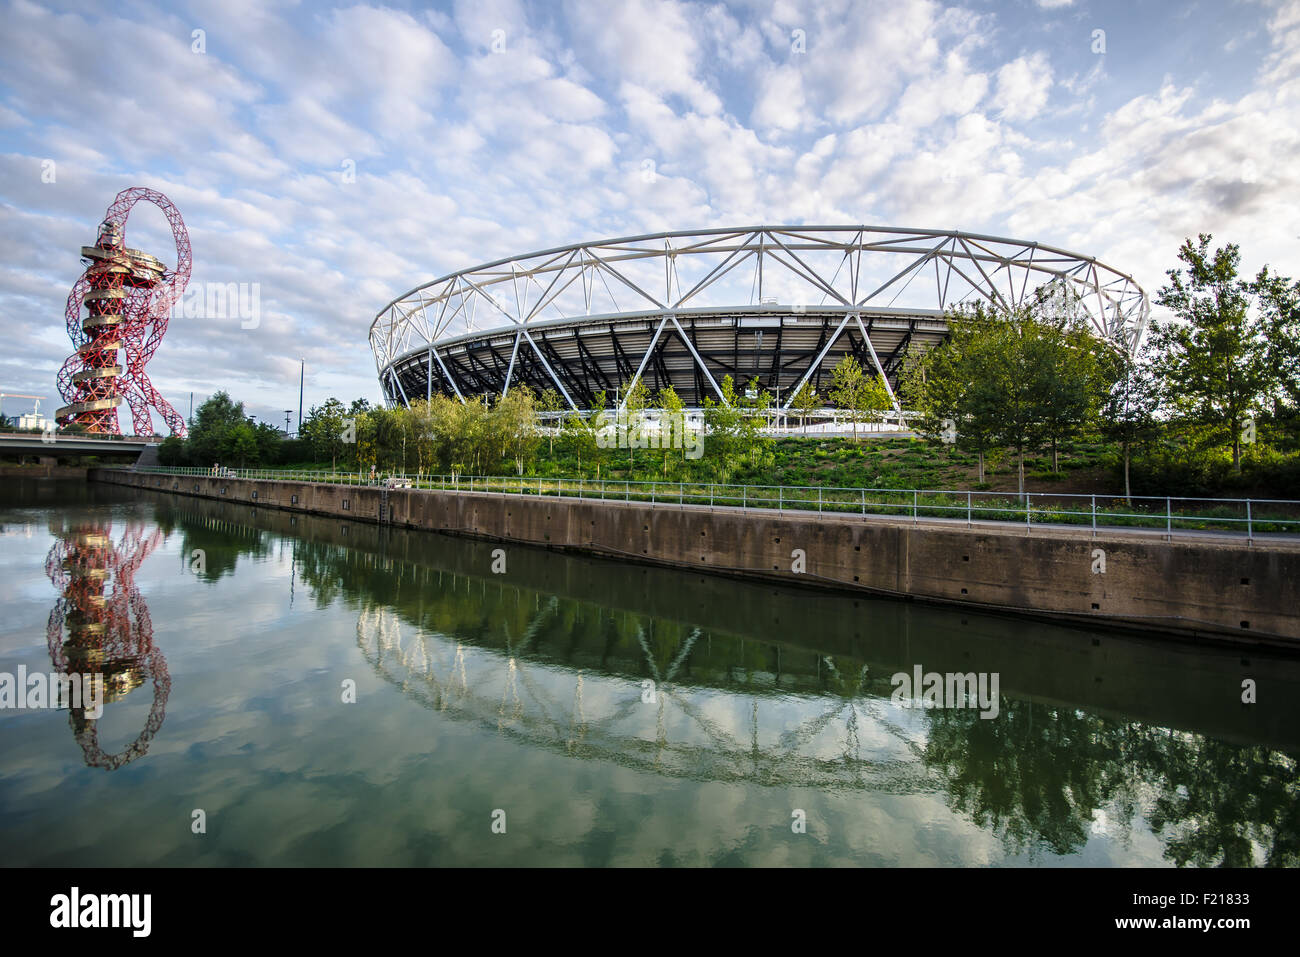 queen-elizabeth-olympic-park-stadium-tower-and-canal-space-for-copy-F21833.jpg